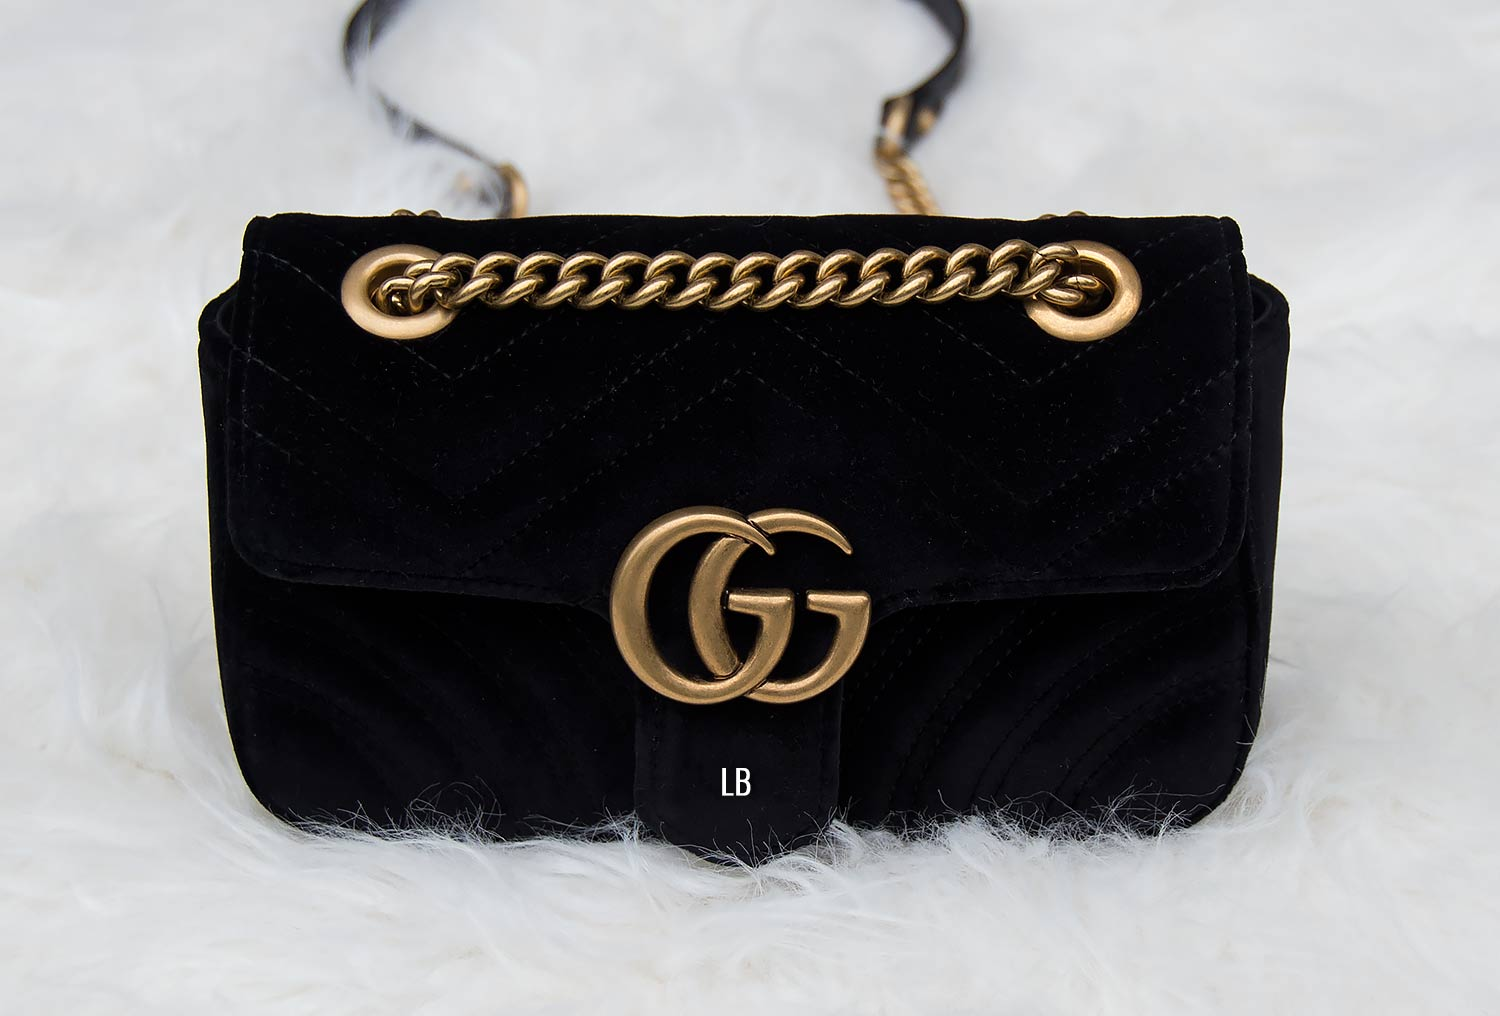 c6e89605503 Gucci GG Marmont Black Velvet Mini Bag Review